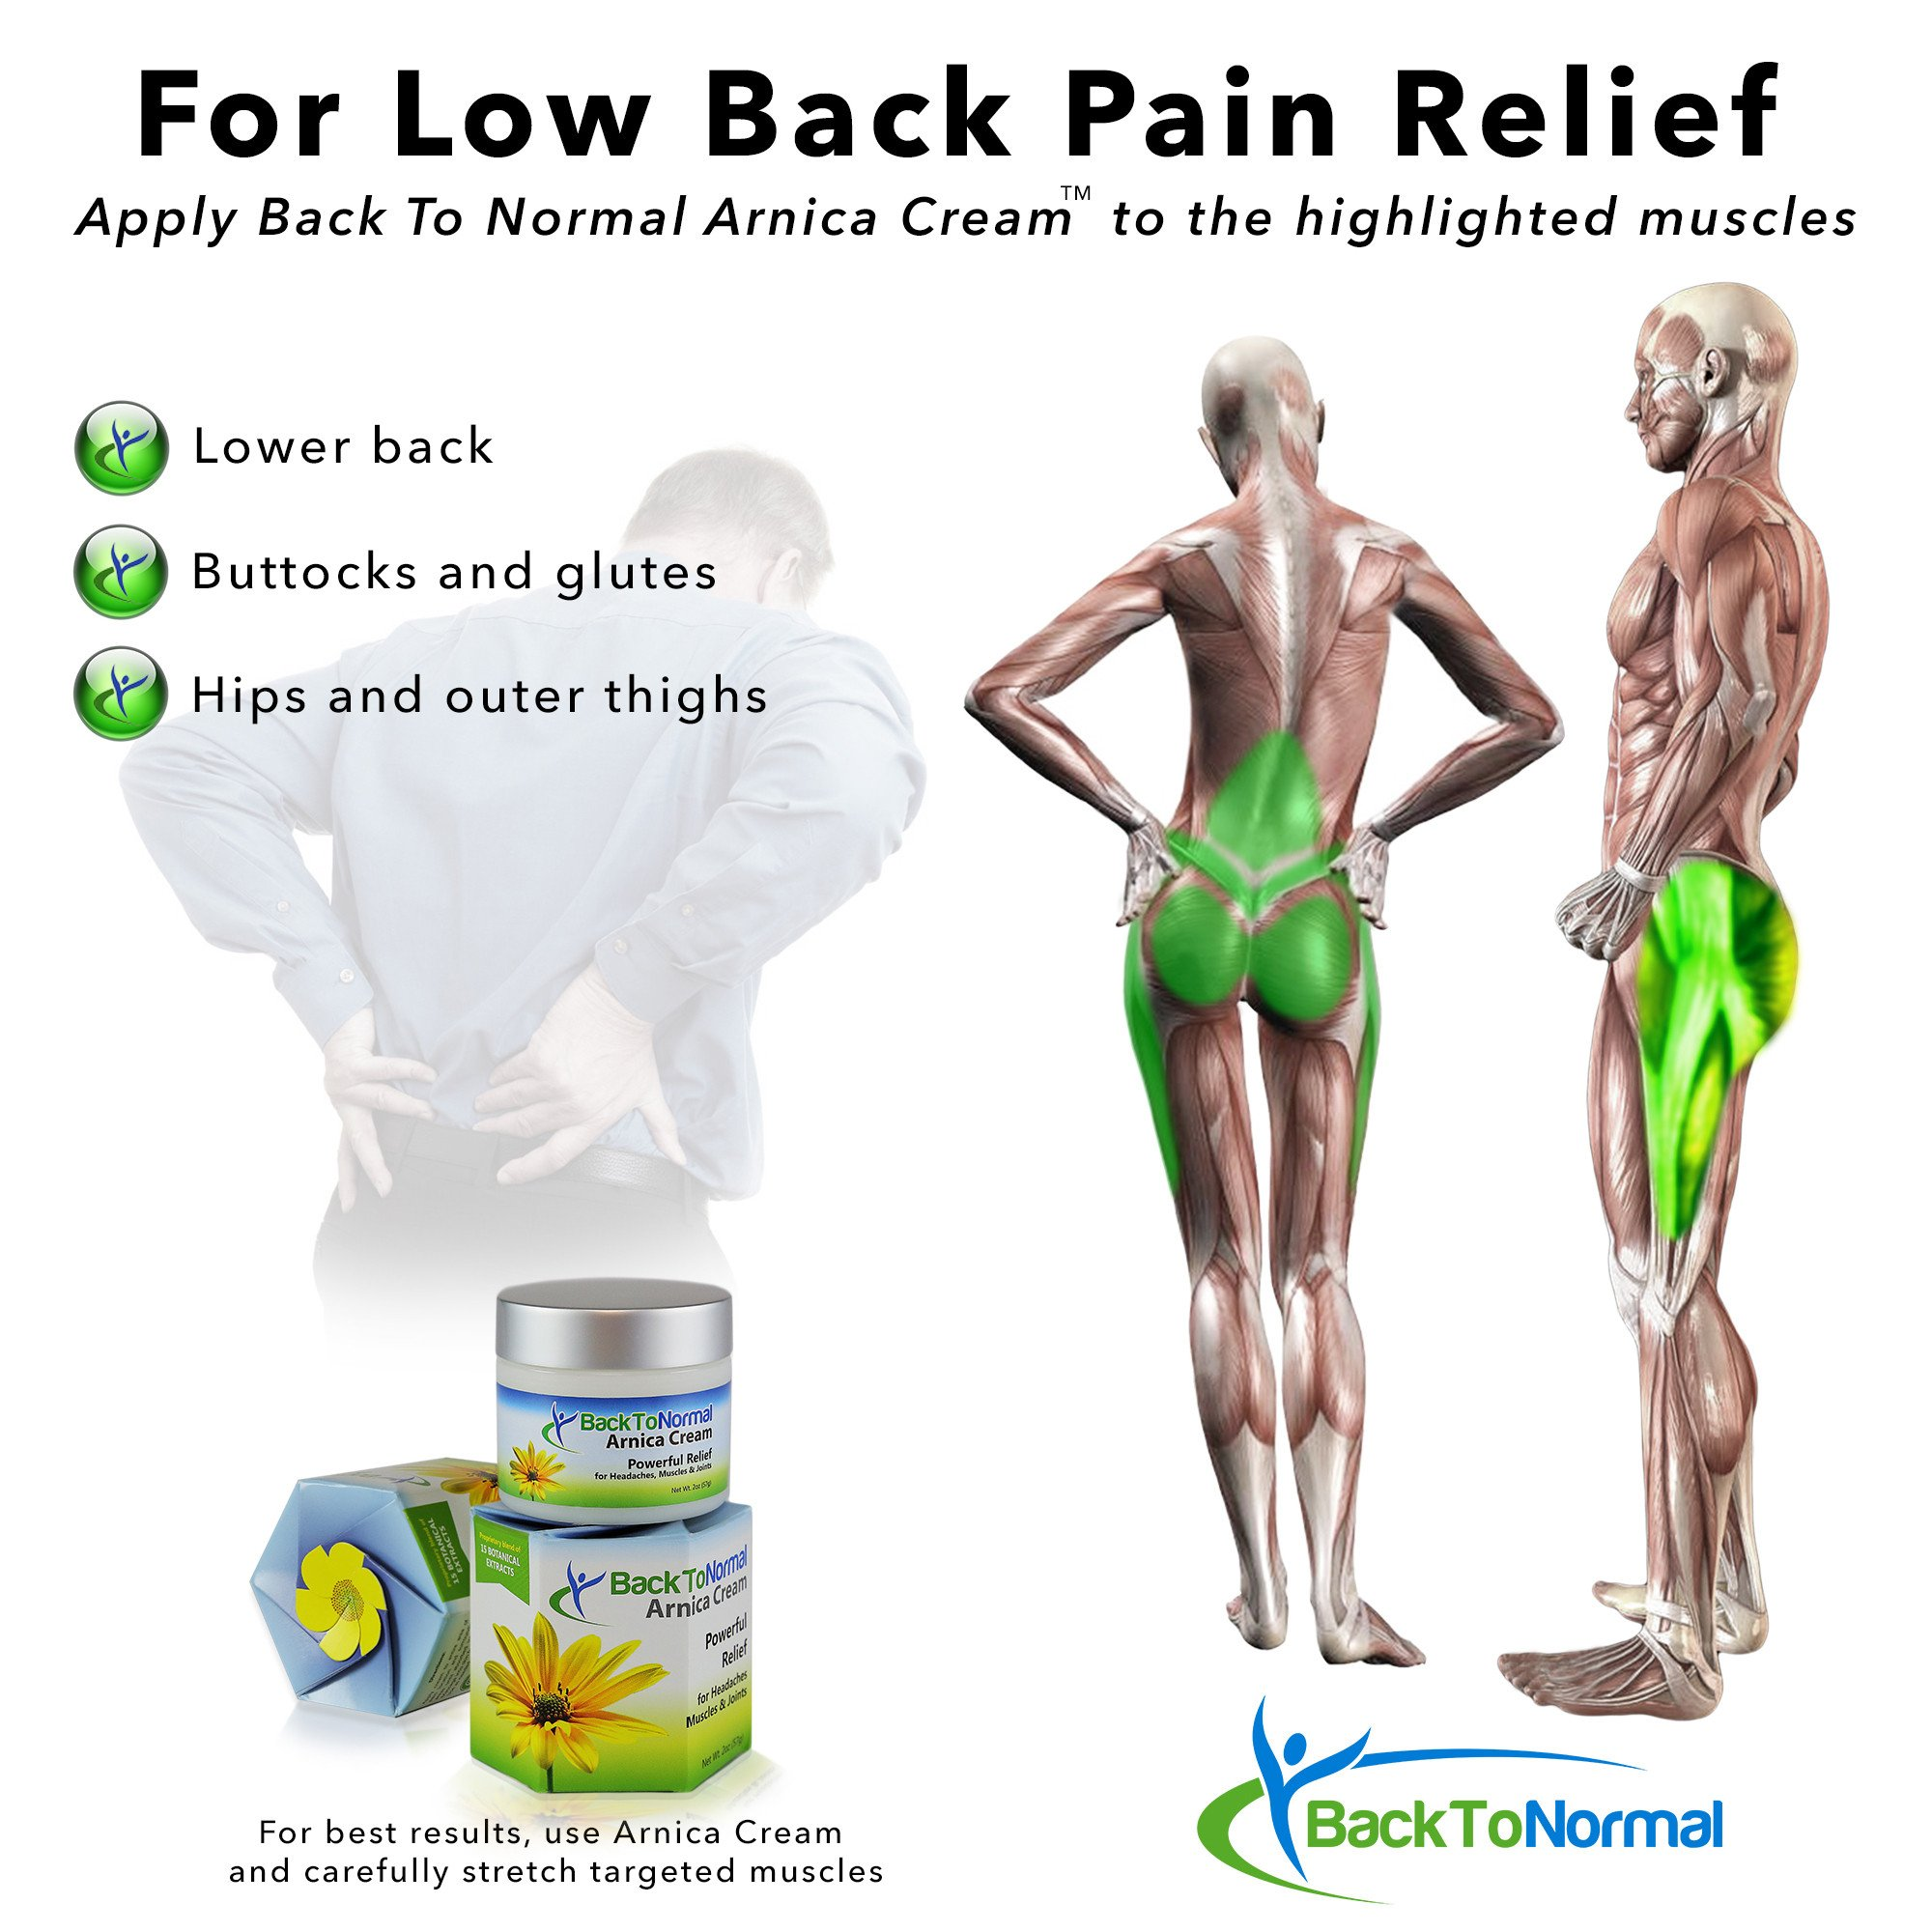 Back To Normal Arnica Cream Low Back Pain Relief.jpg?v=1455145170